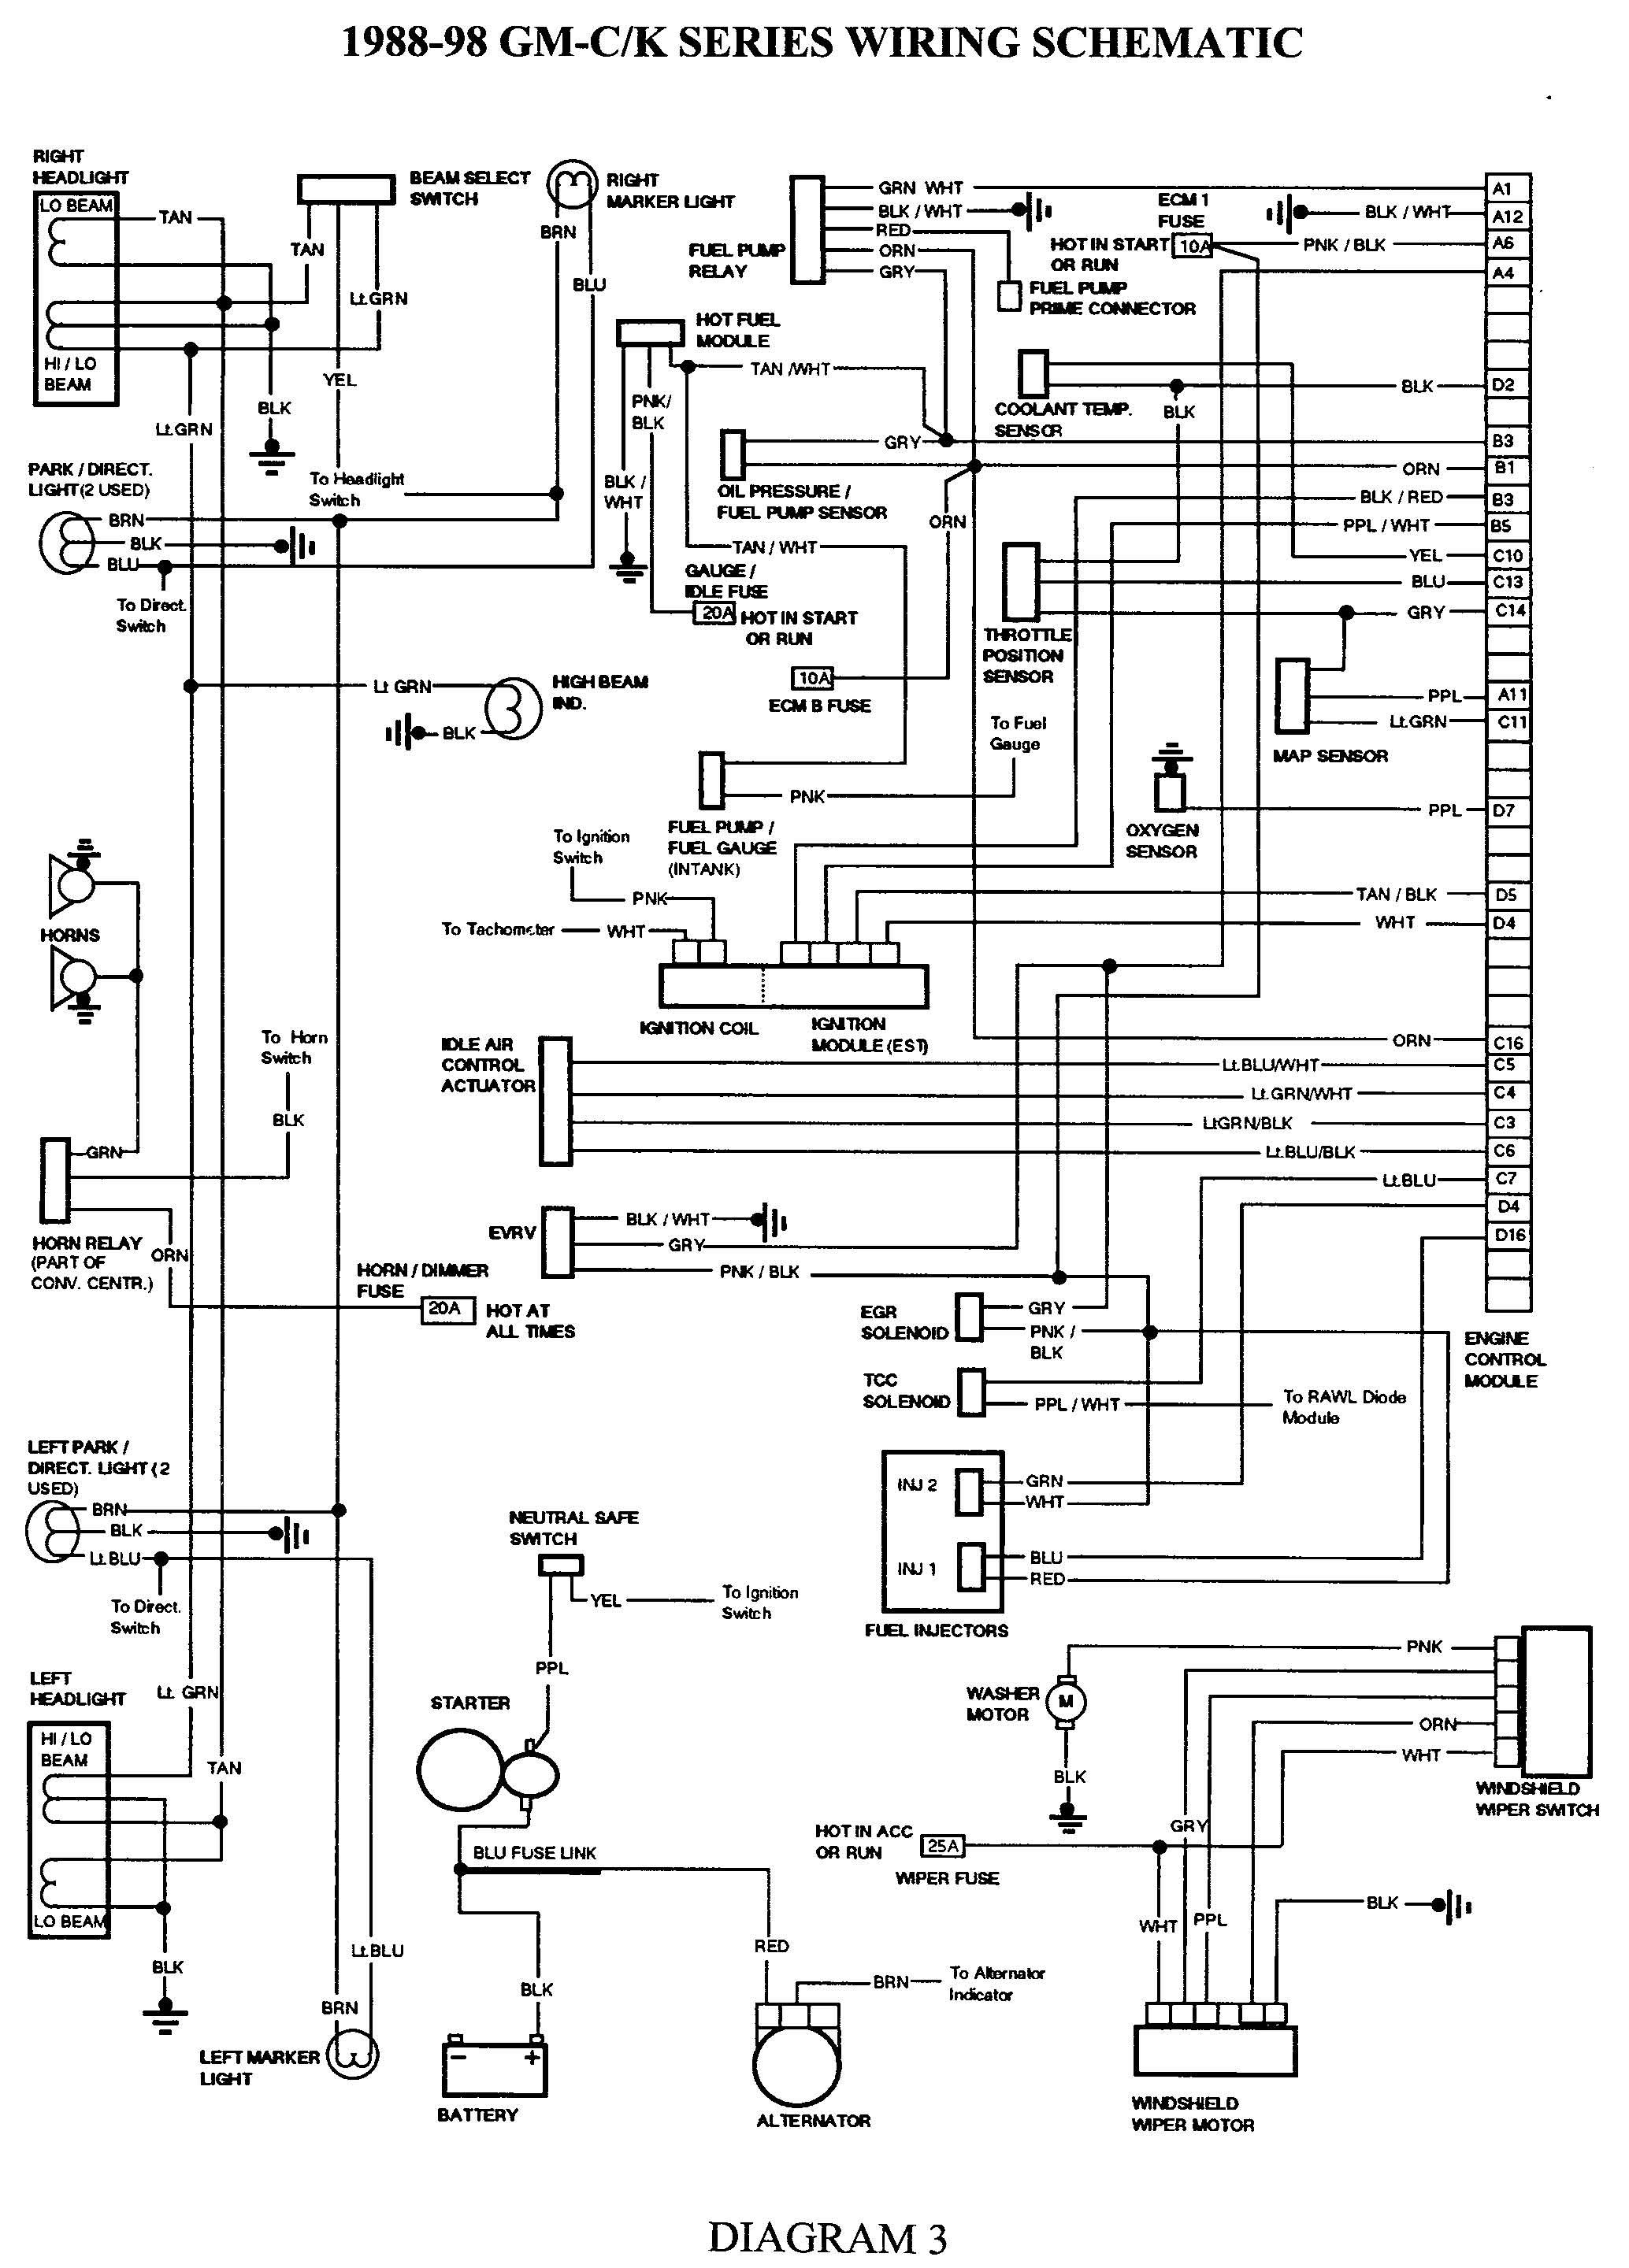 b2f2e5dbdc07dada83ef514f6d4ce3d4 gmc truck wiring diagrams on gm wiring harness diagram 88 98 kc simple chevy tbi wiring harness diagram at virtualis.co